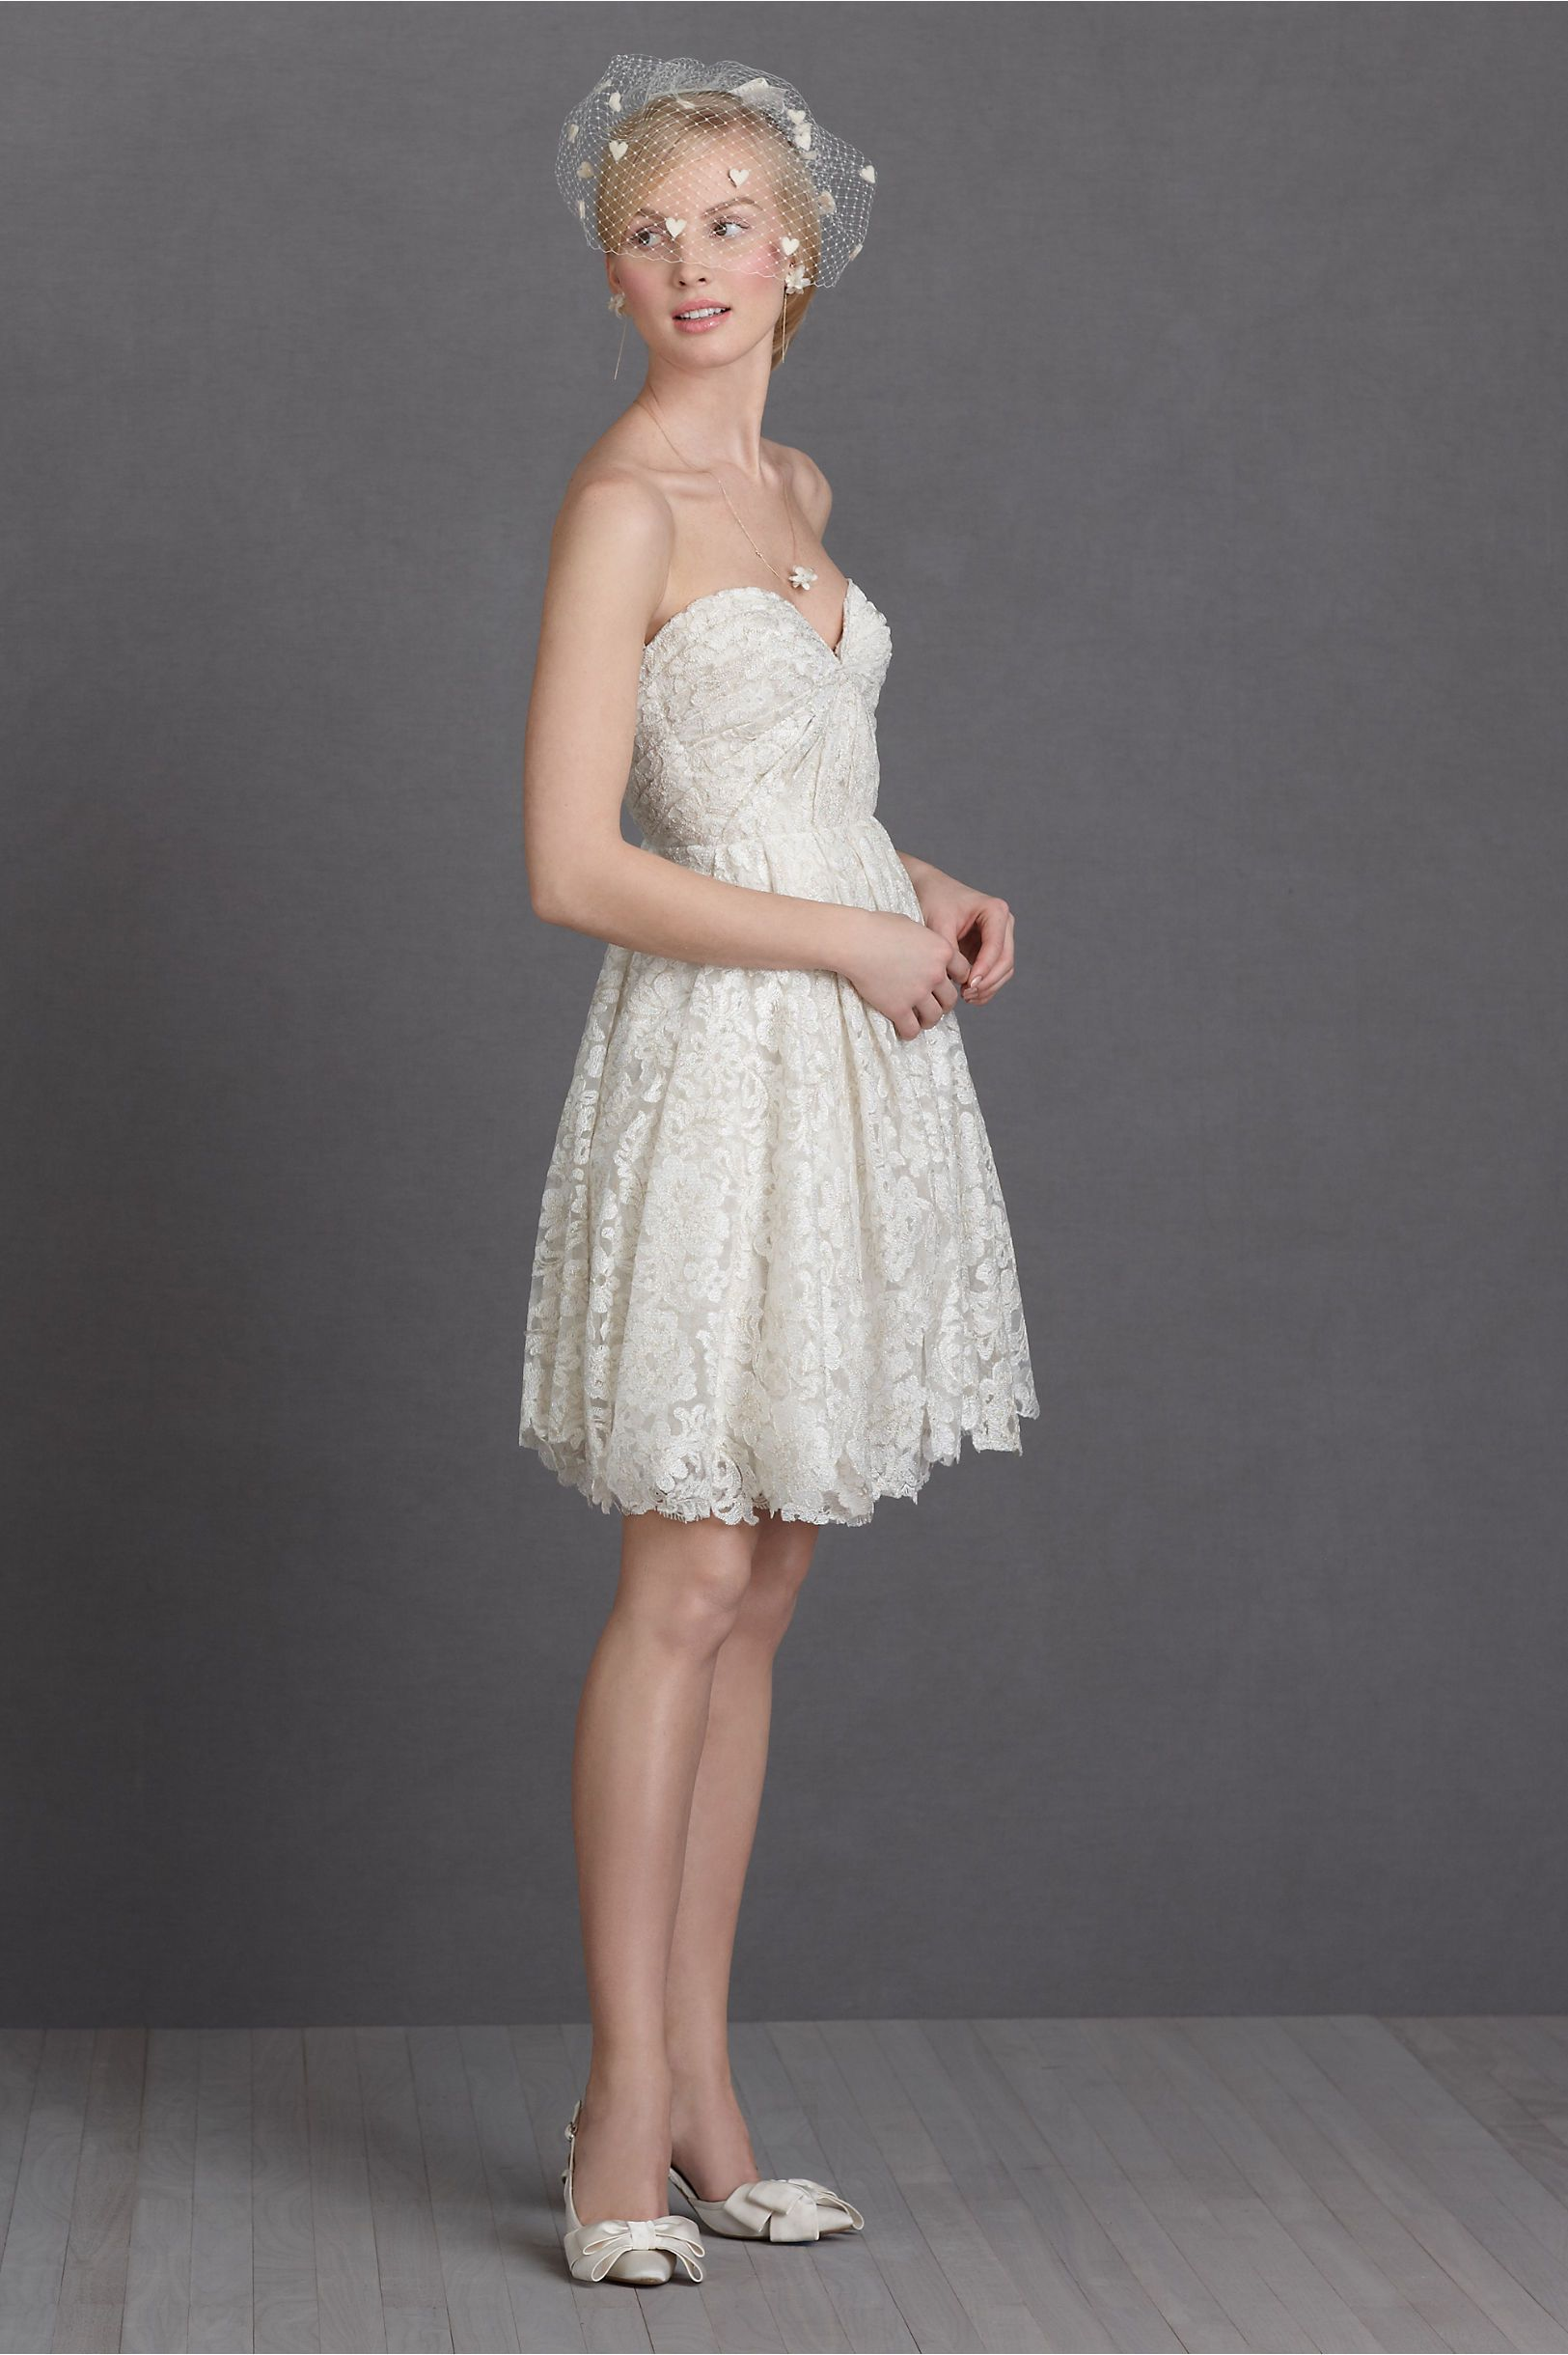 Lace dresses for wedding reception  Lustrous Lace Dress from BHLDN  also require a fancy belt  Vegas